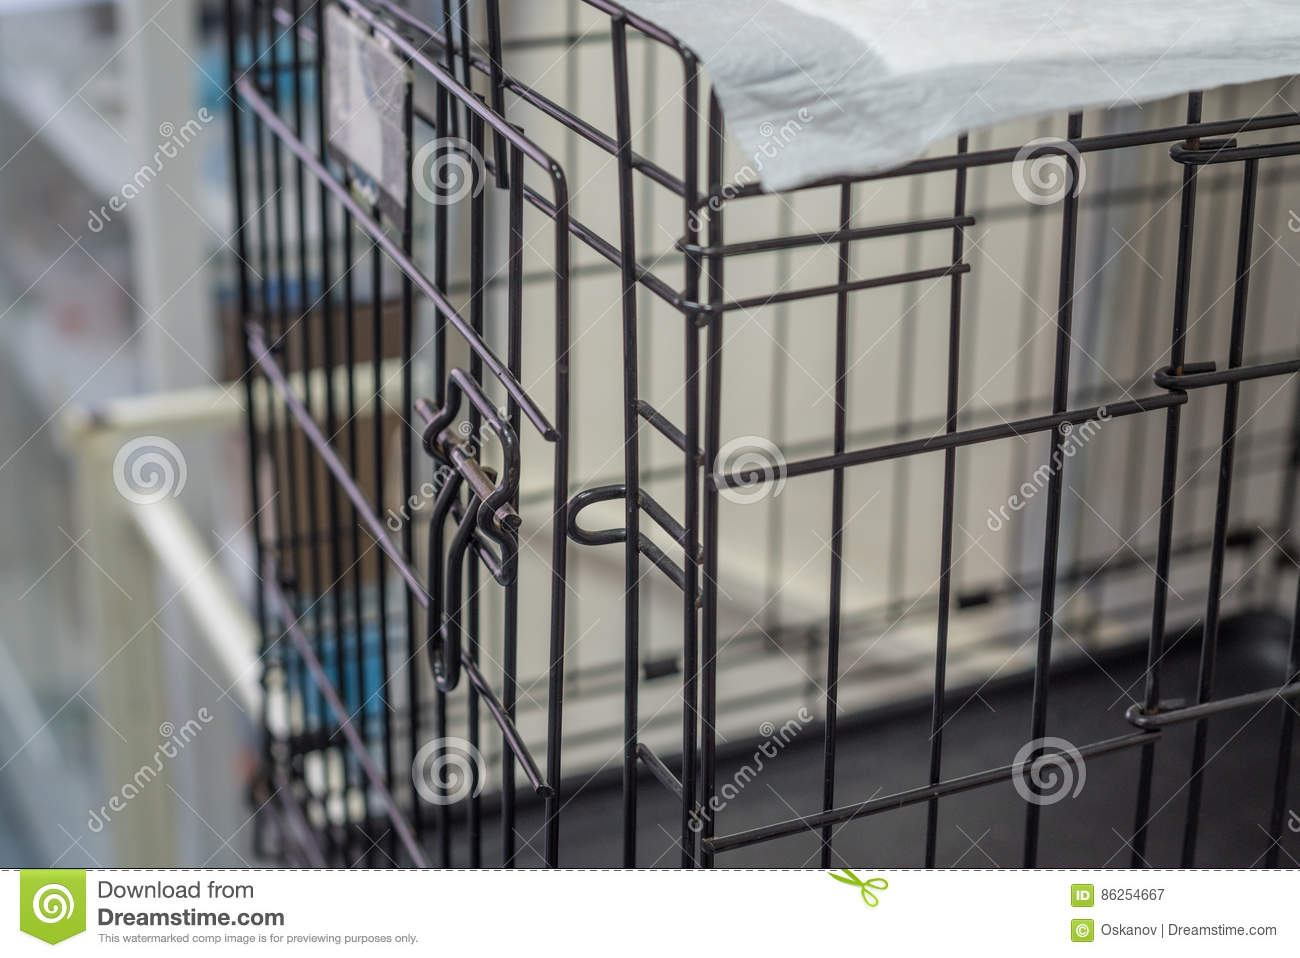 Pet Wire Crate Or Animal Cage Stock Image - Image of kennels, open ...